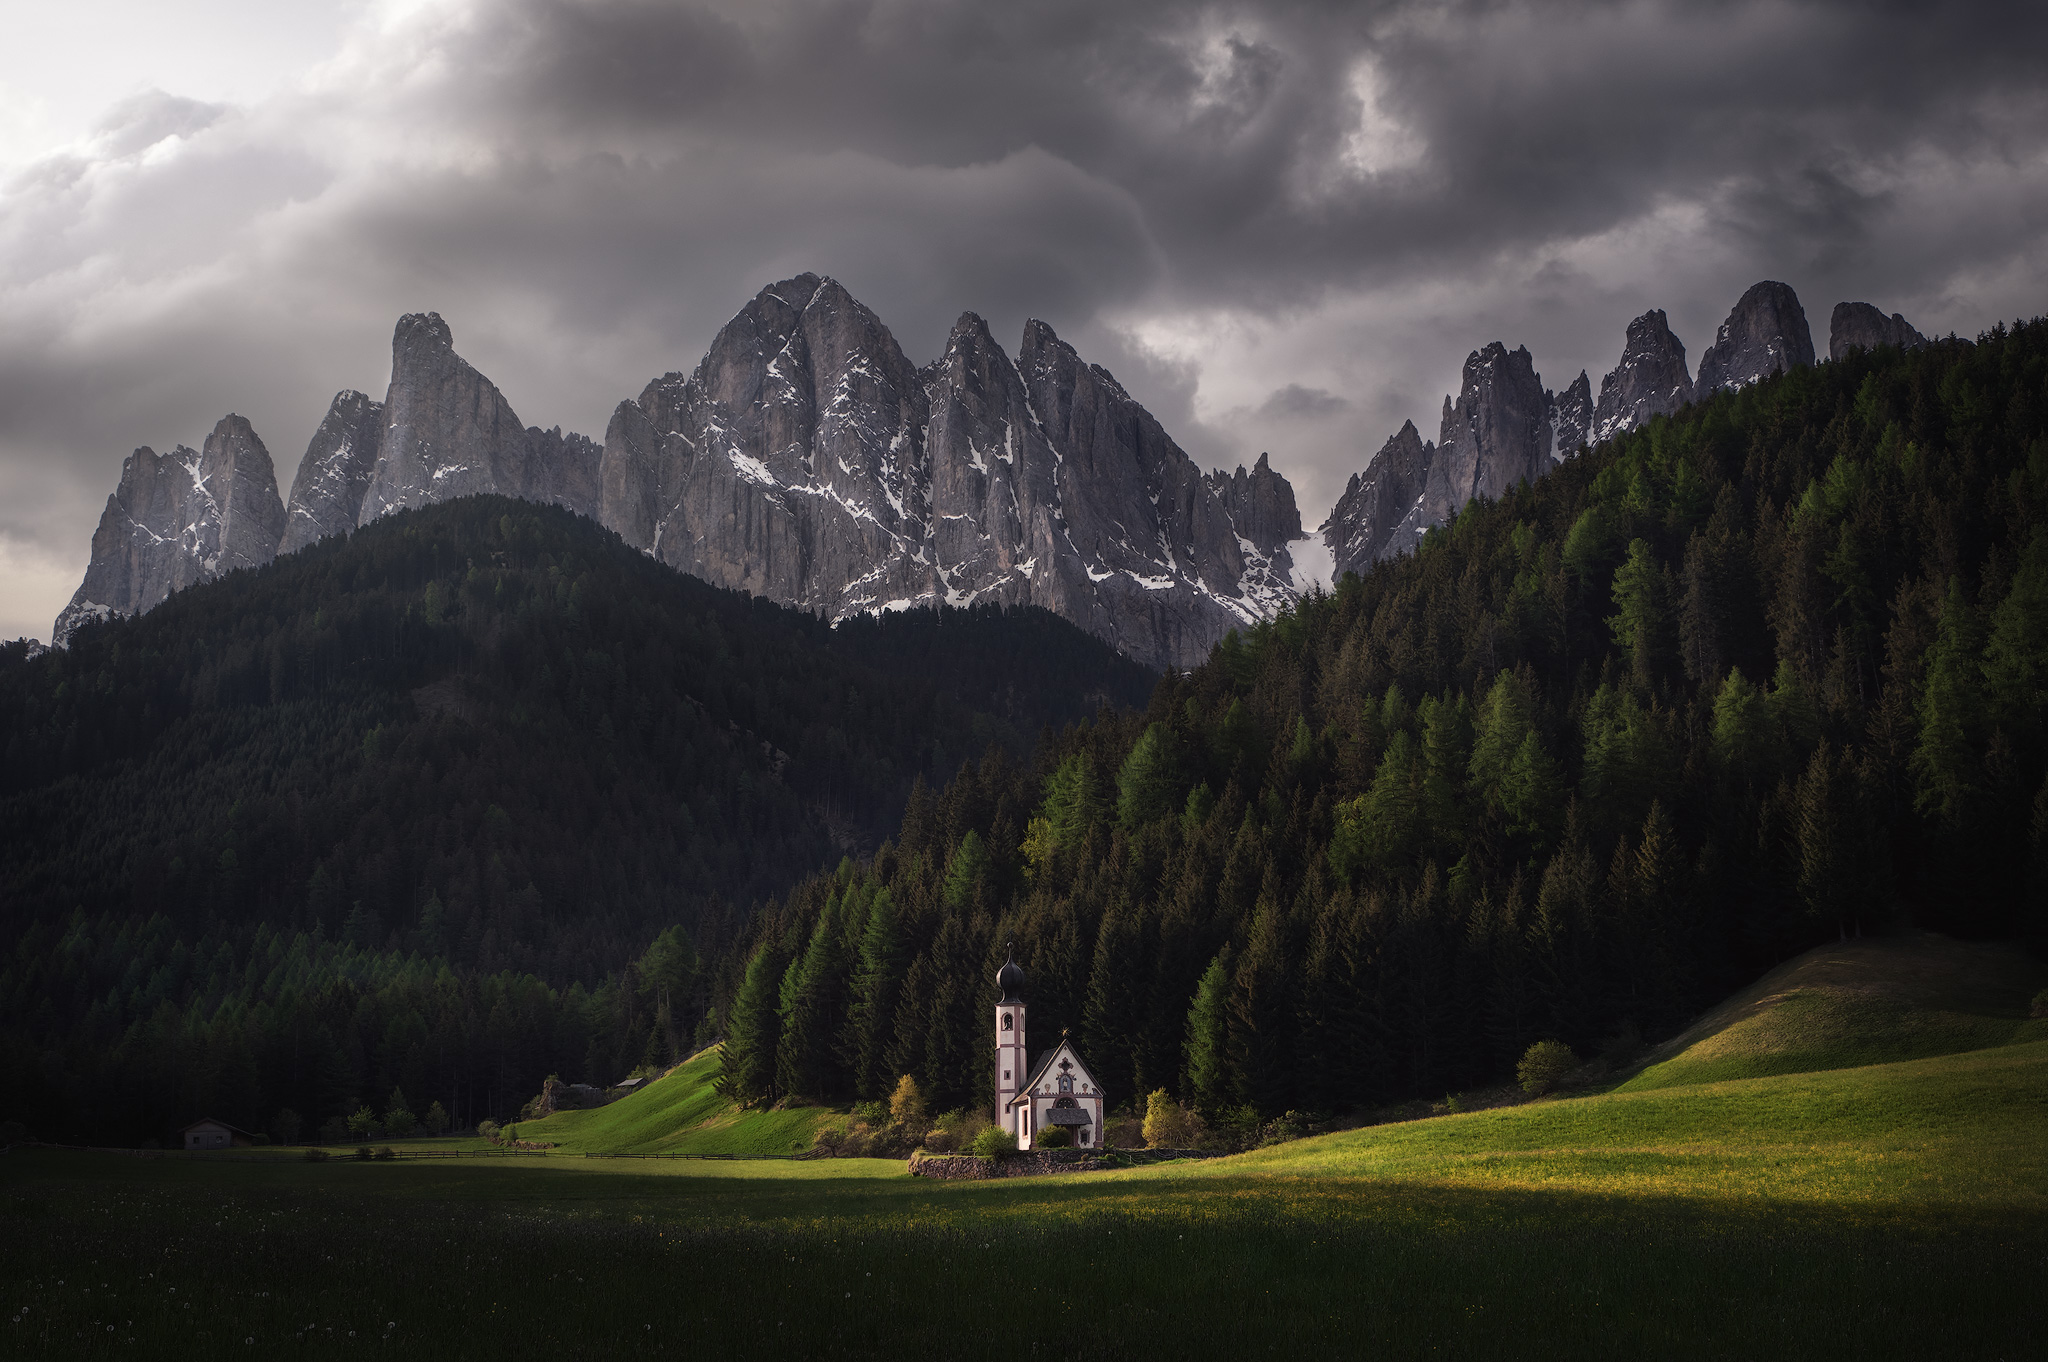 dolomites_workshop_09.jpg